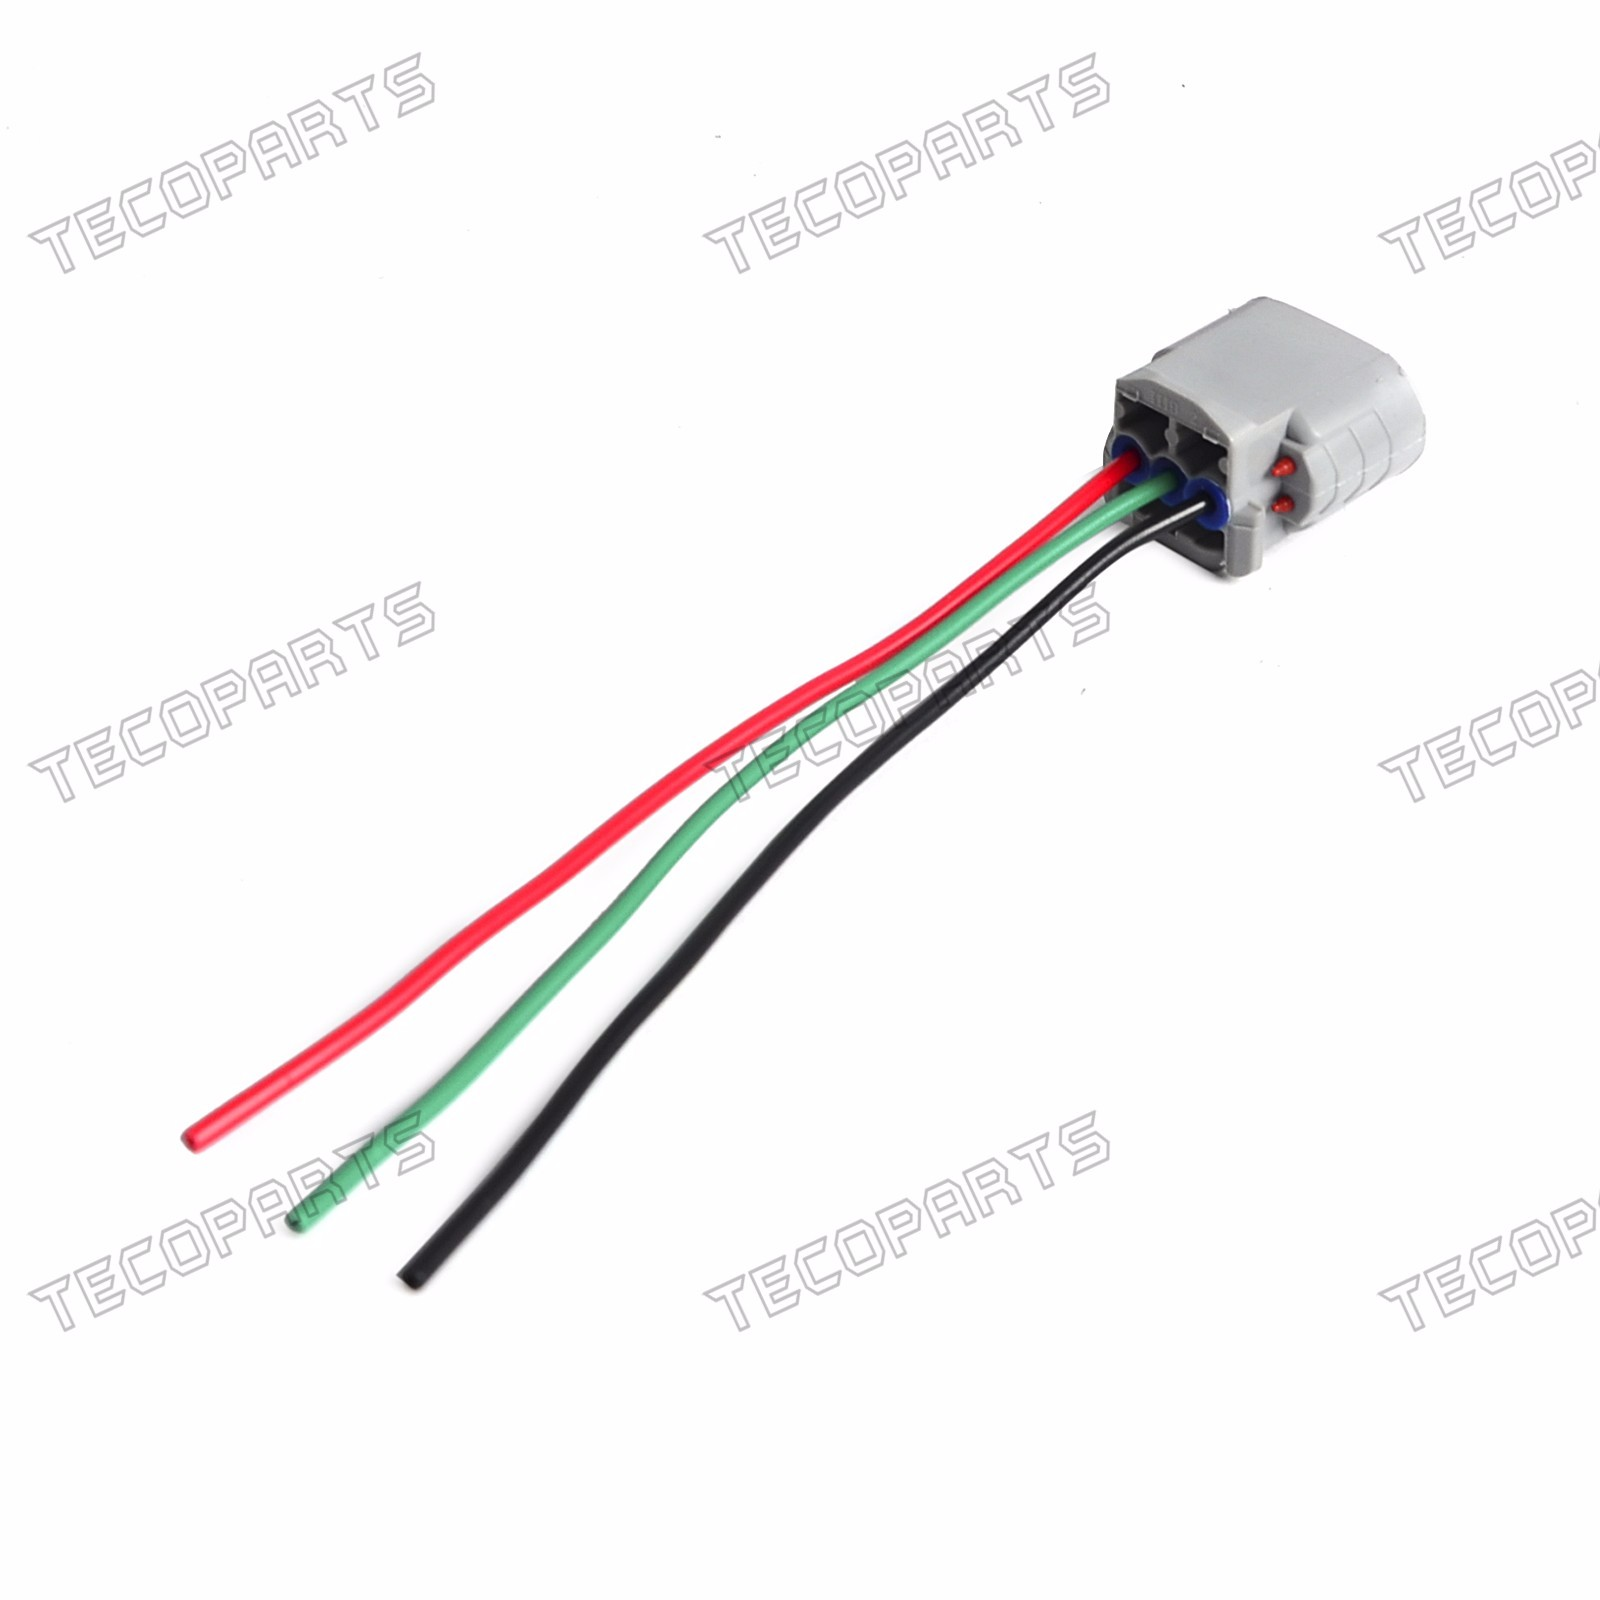 alternator repair plug harness 3 wire connector fit nissan